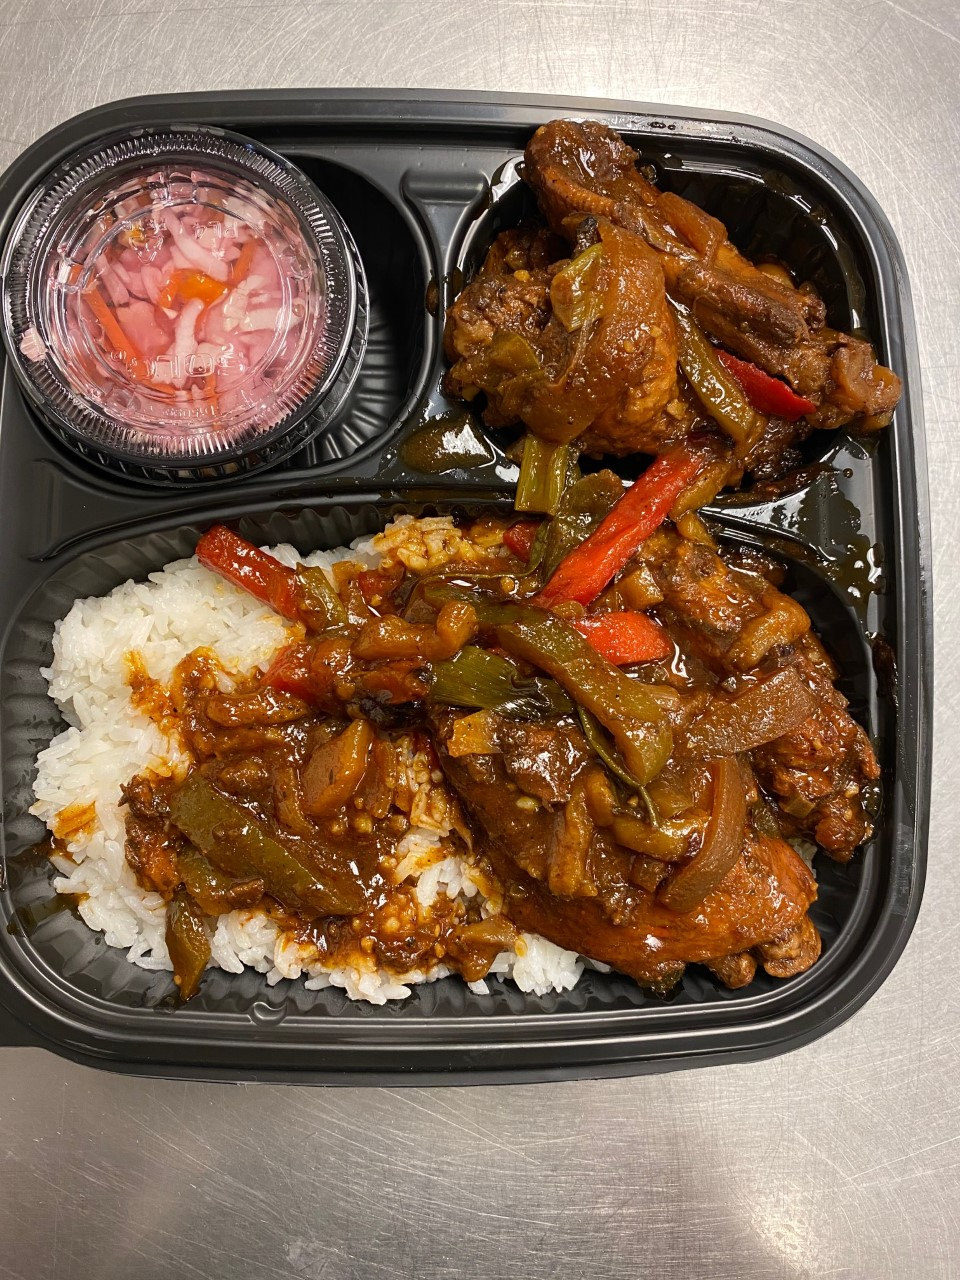 Jamaican Brown Stew Chicken A flavor Jamaican classic stewed chicken that's primarily sweet and spicy. Incredibly rich in spices and herbs. Serve With Rice and Peas, Steamed Veggie  $10.00